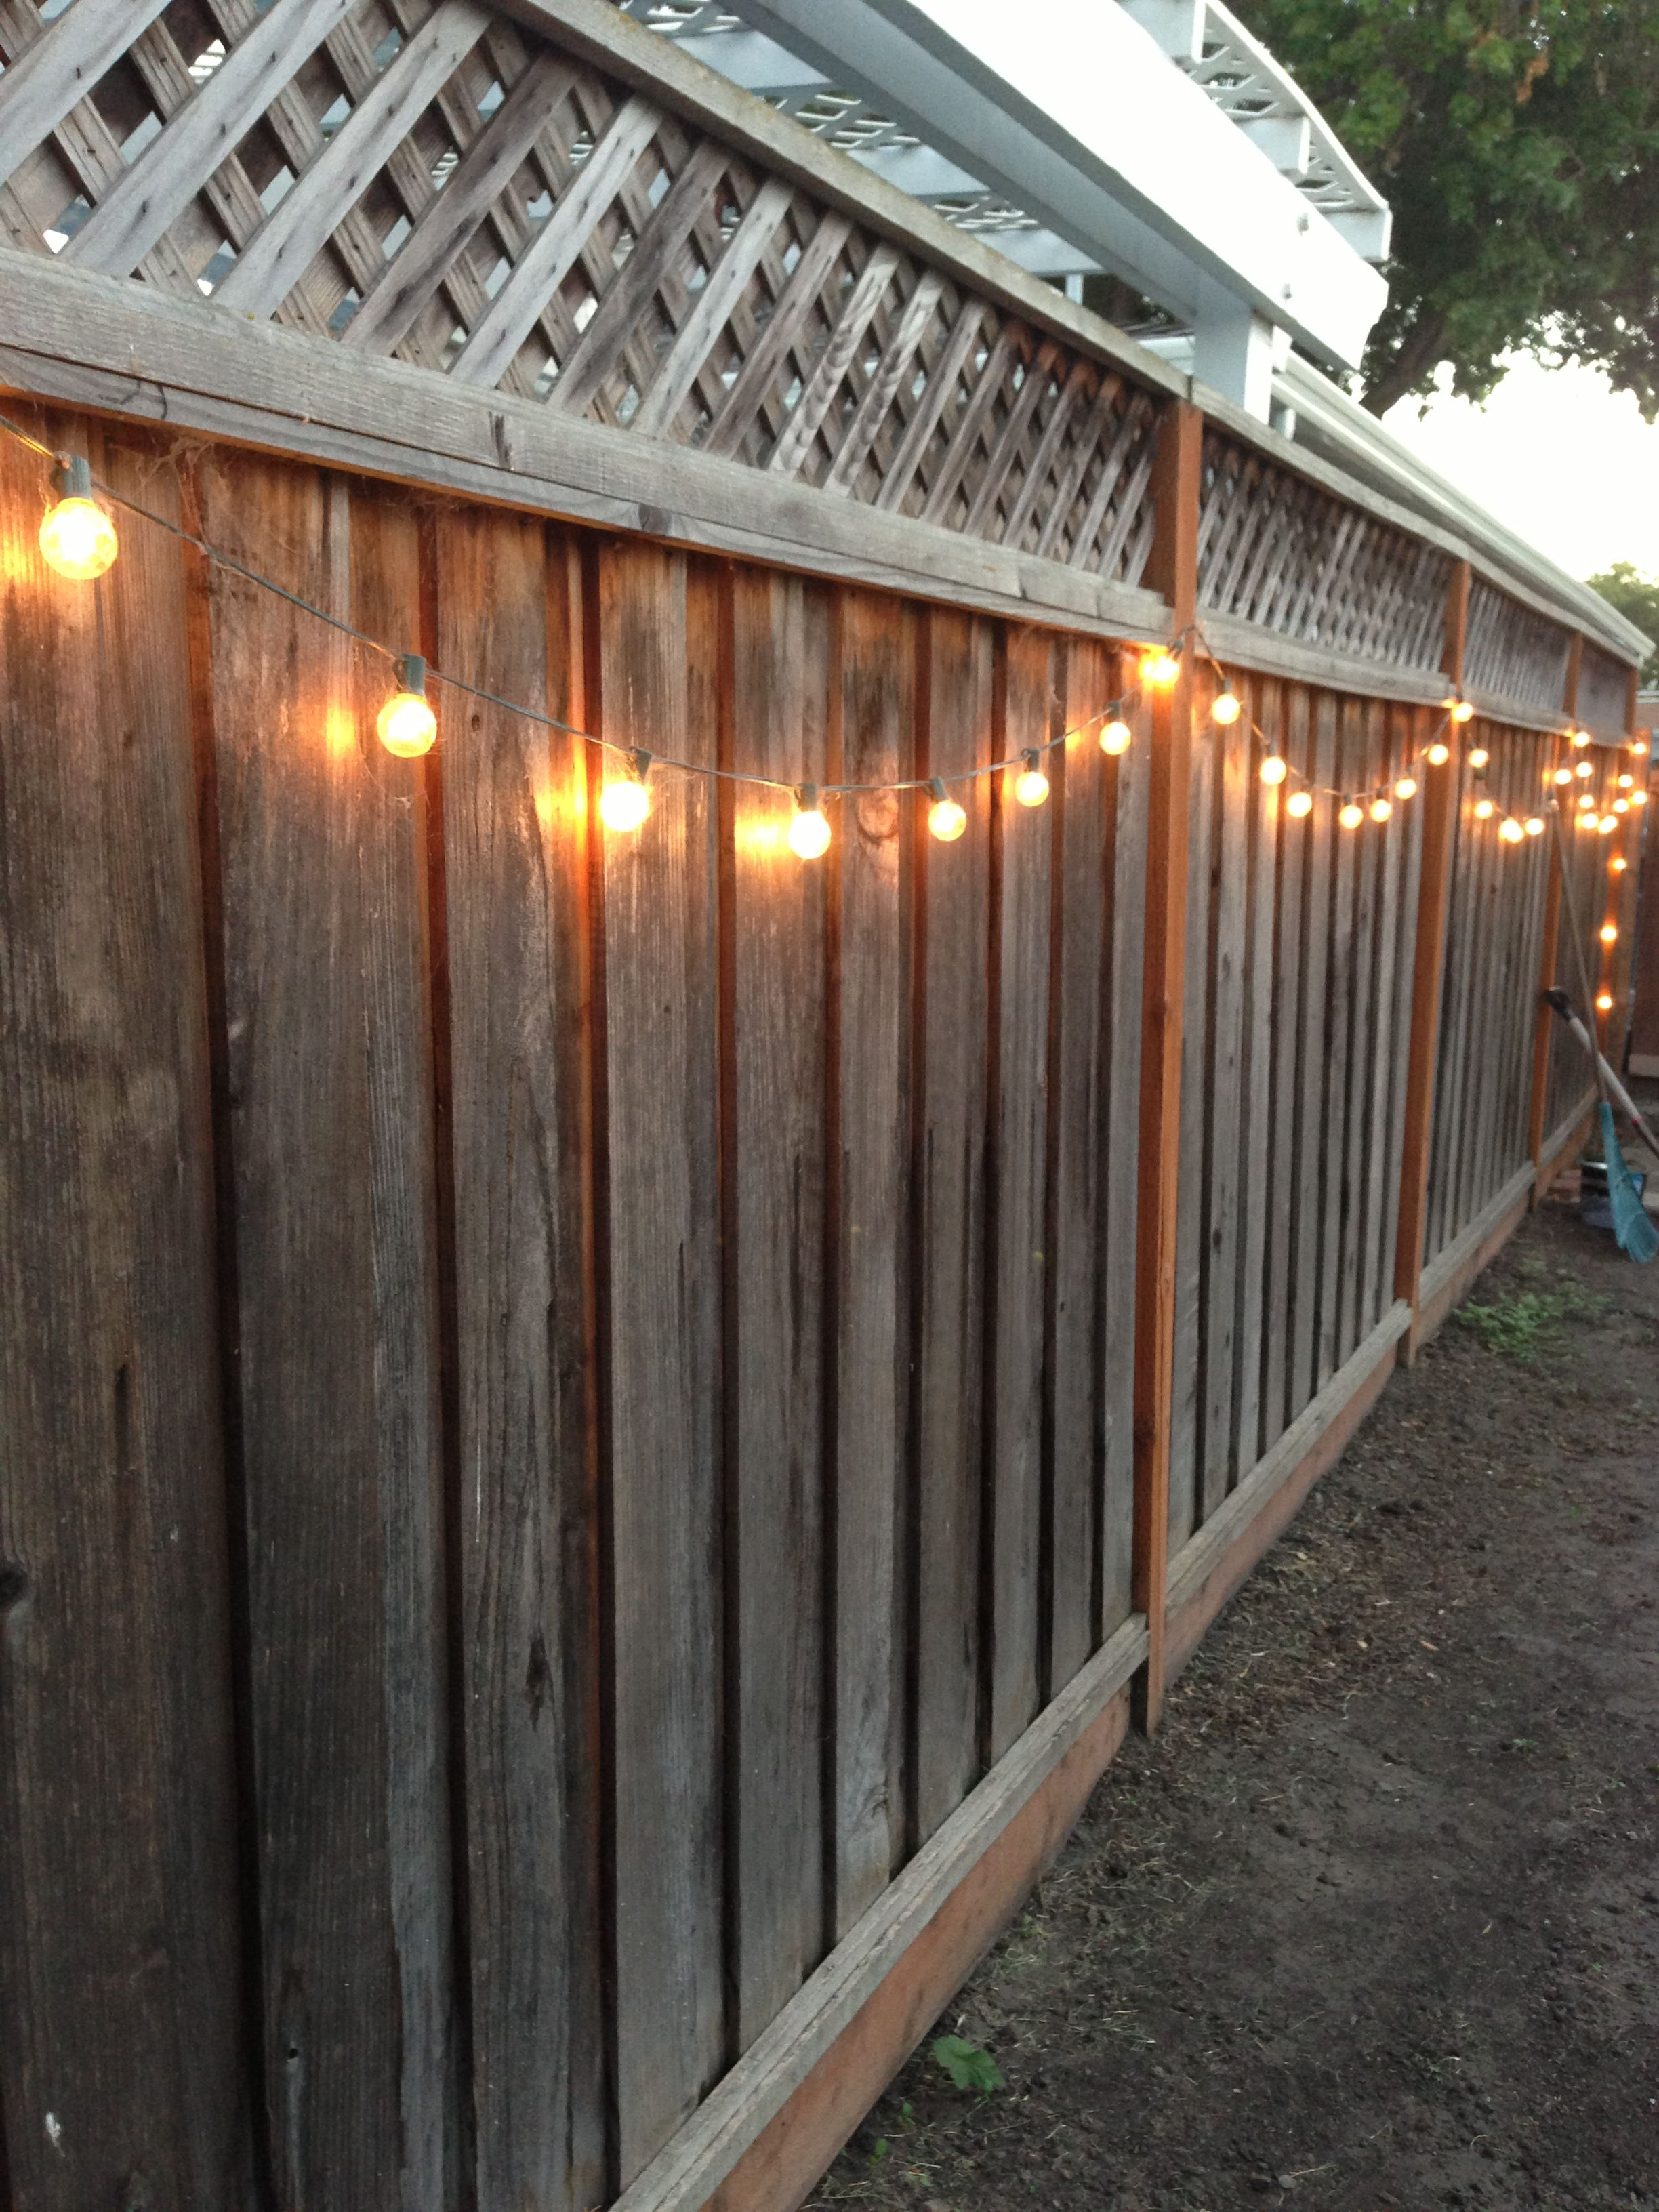 String Lights On Fence : DIY backyard lighting. Hang lights on your fence! DIY Pinterest Fences, Backyard and Lights